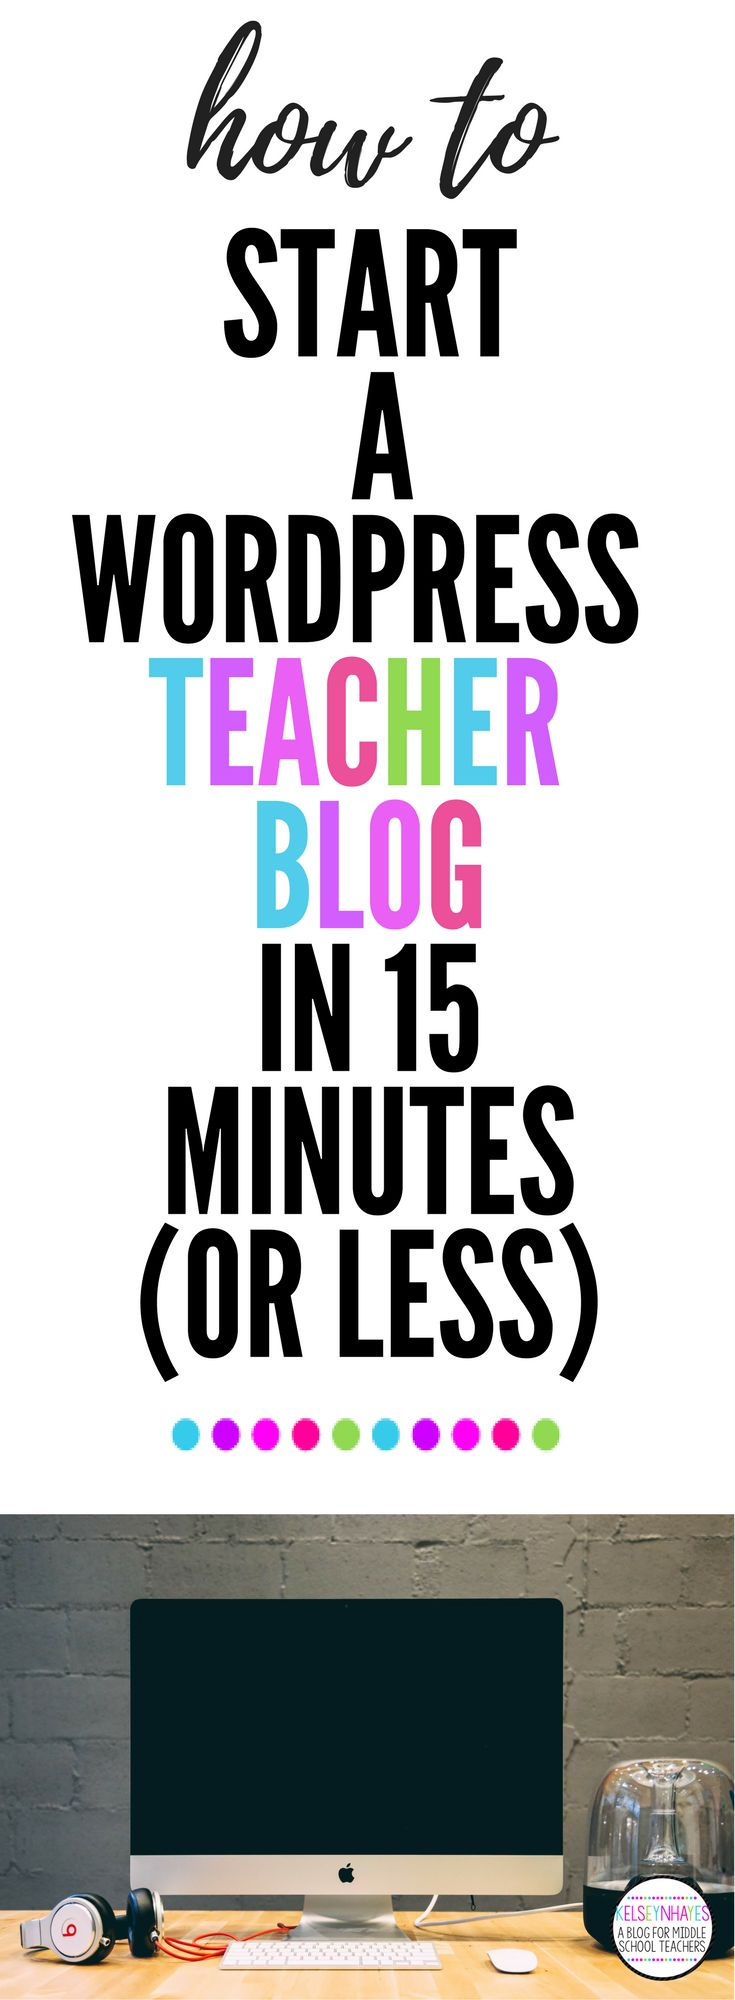 How to Start a Teacher Blog on Wordpress in 15 Minutes or Less!